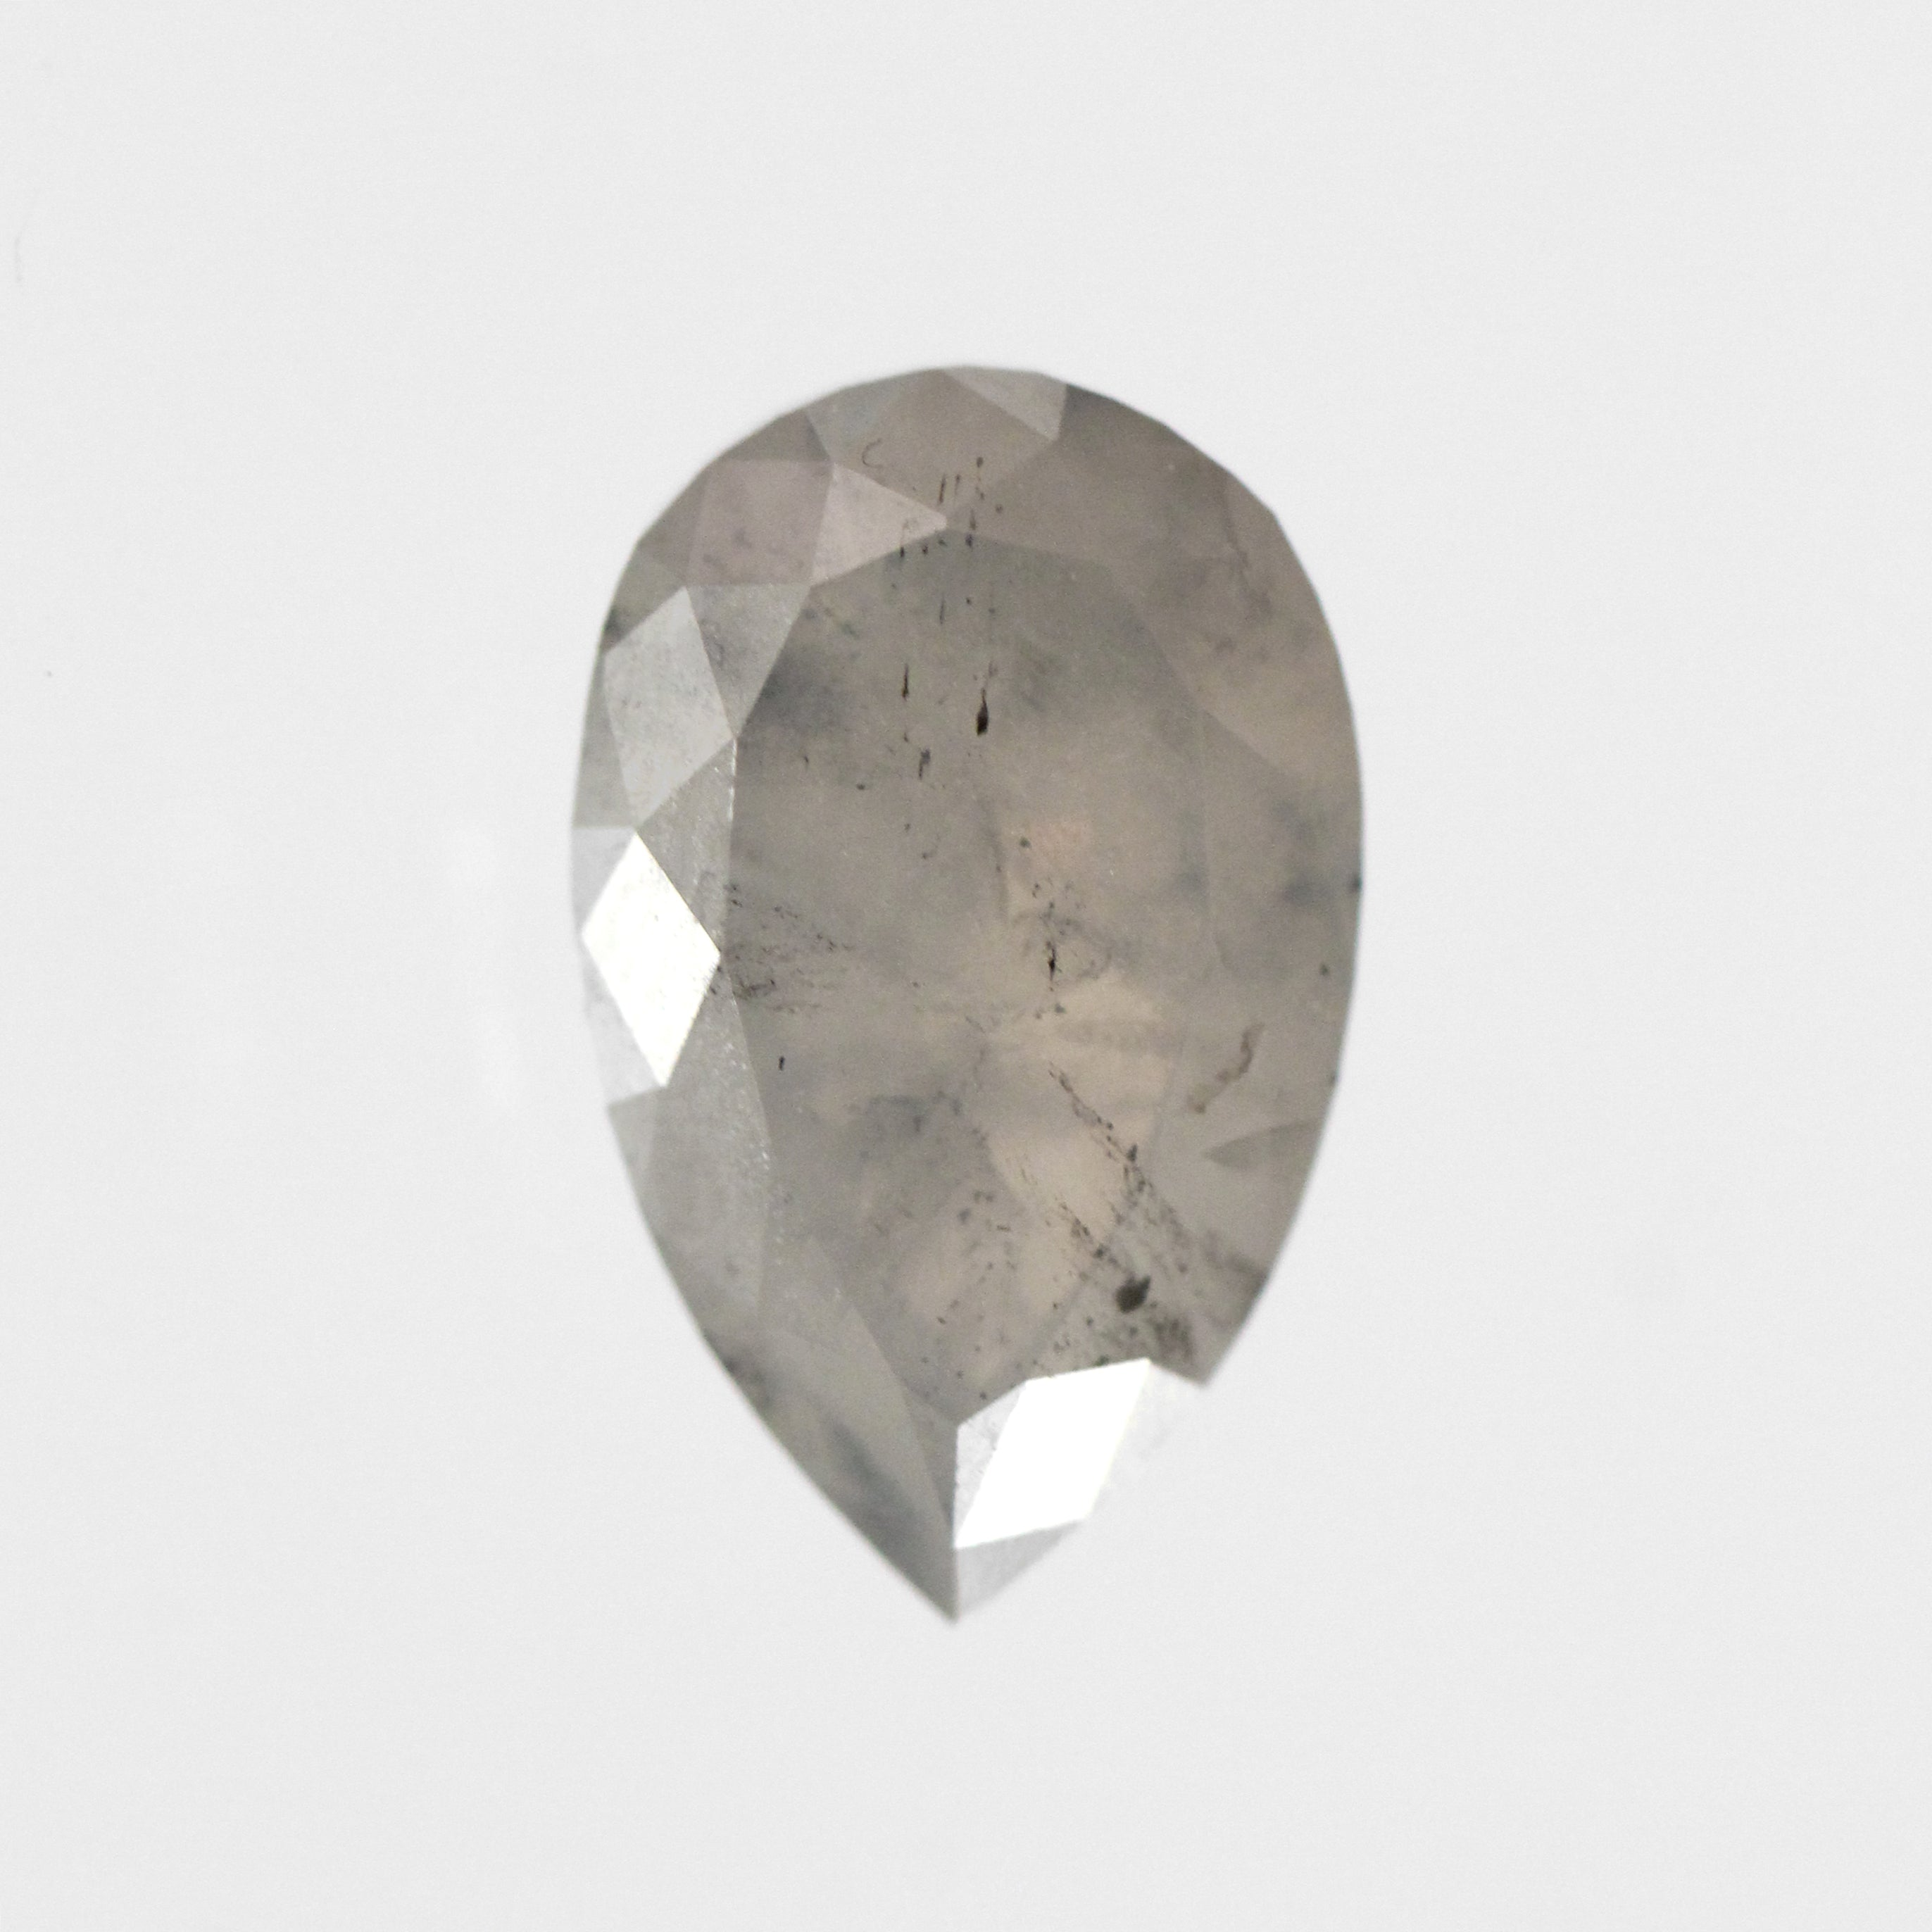 2.31ct Brilliant Cut Pear Celestial Diamond® for Custom Work - Inventory Code LGP231 - Celestial Diamonds ® by Midwinter Co.